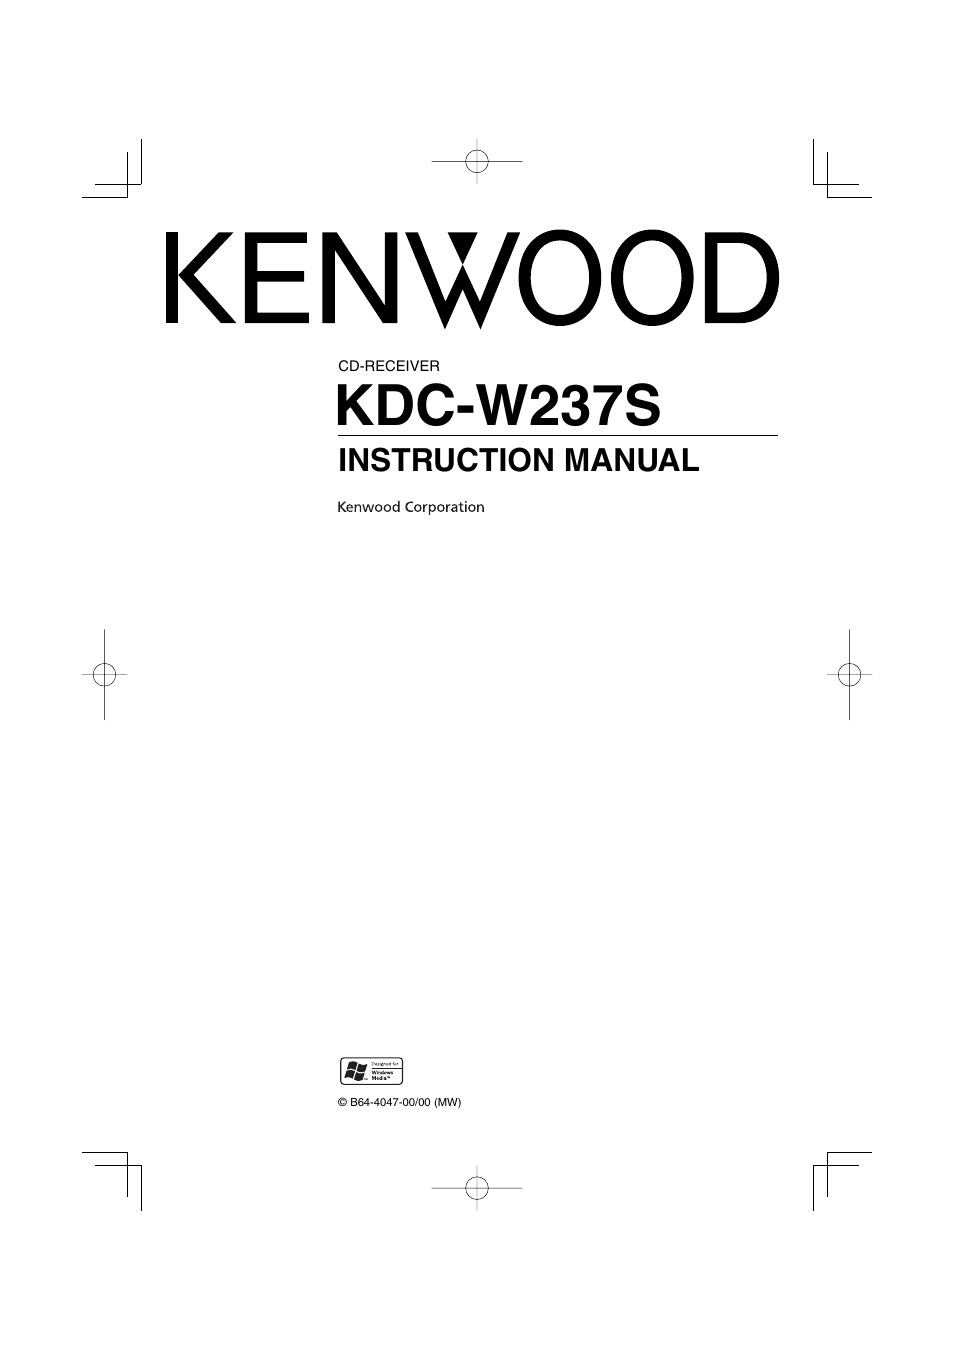 kenwood kdc w237s user manual 20 pages rh manualsdir com Old Kenwood Car Stereo Models Kenwood Receiver Manual